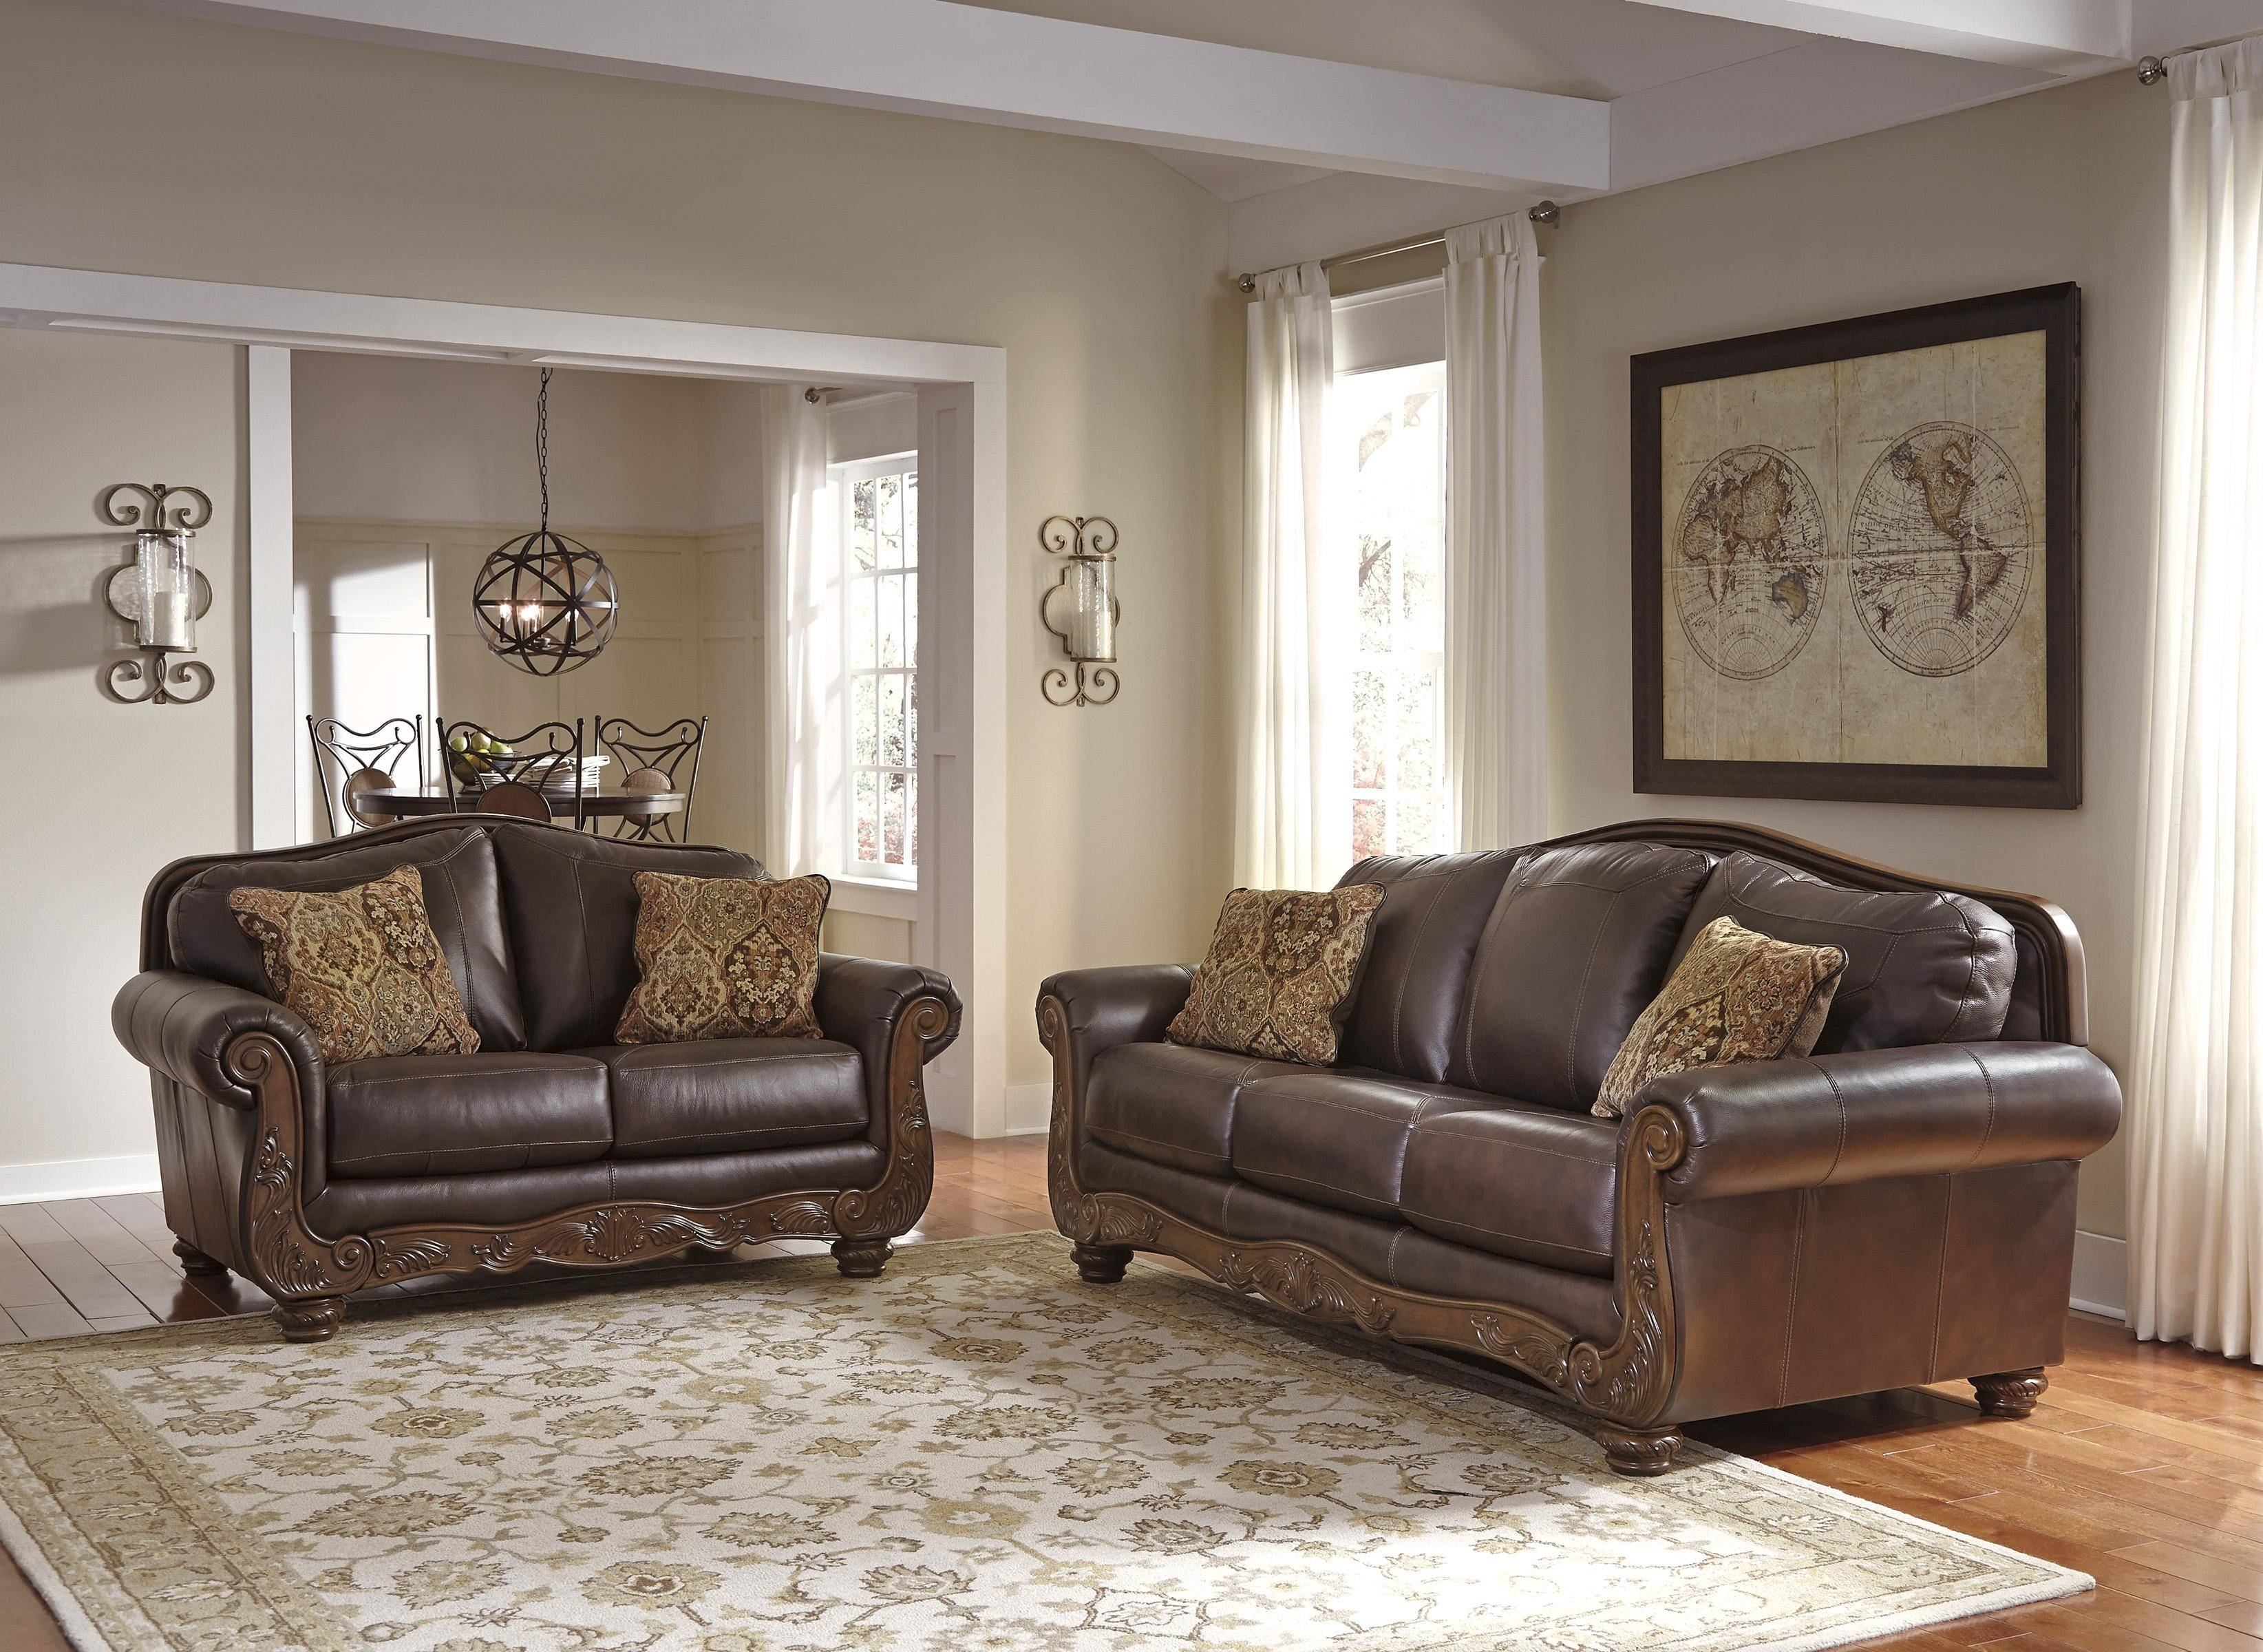 Ashley Mellwood Living Room Set 2pcs Walnut Color (64605